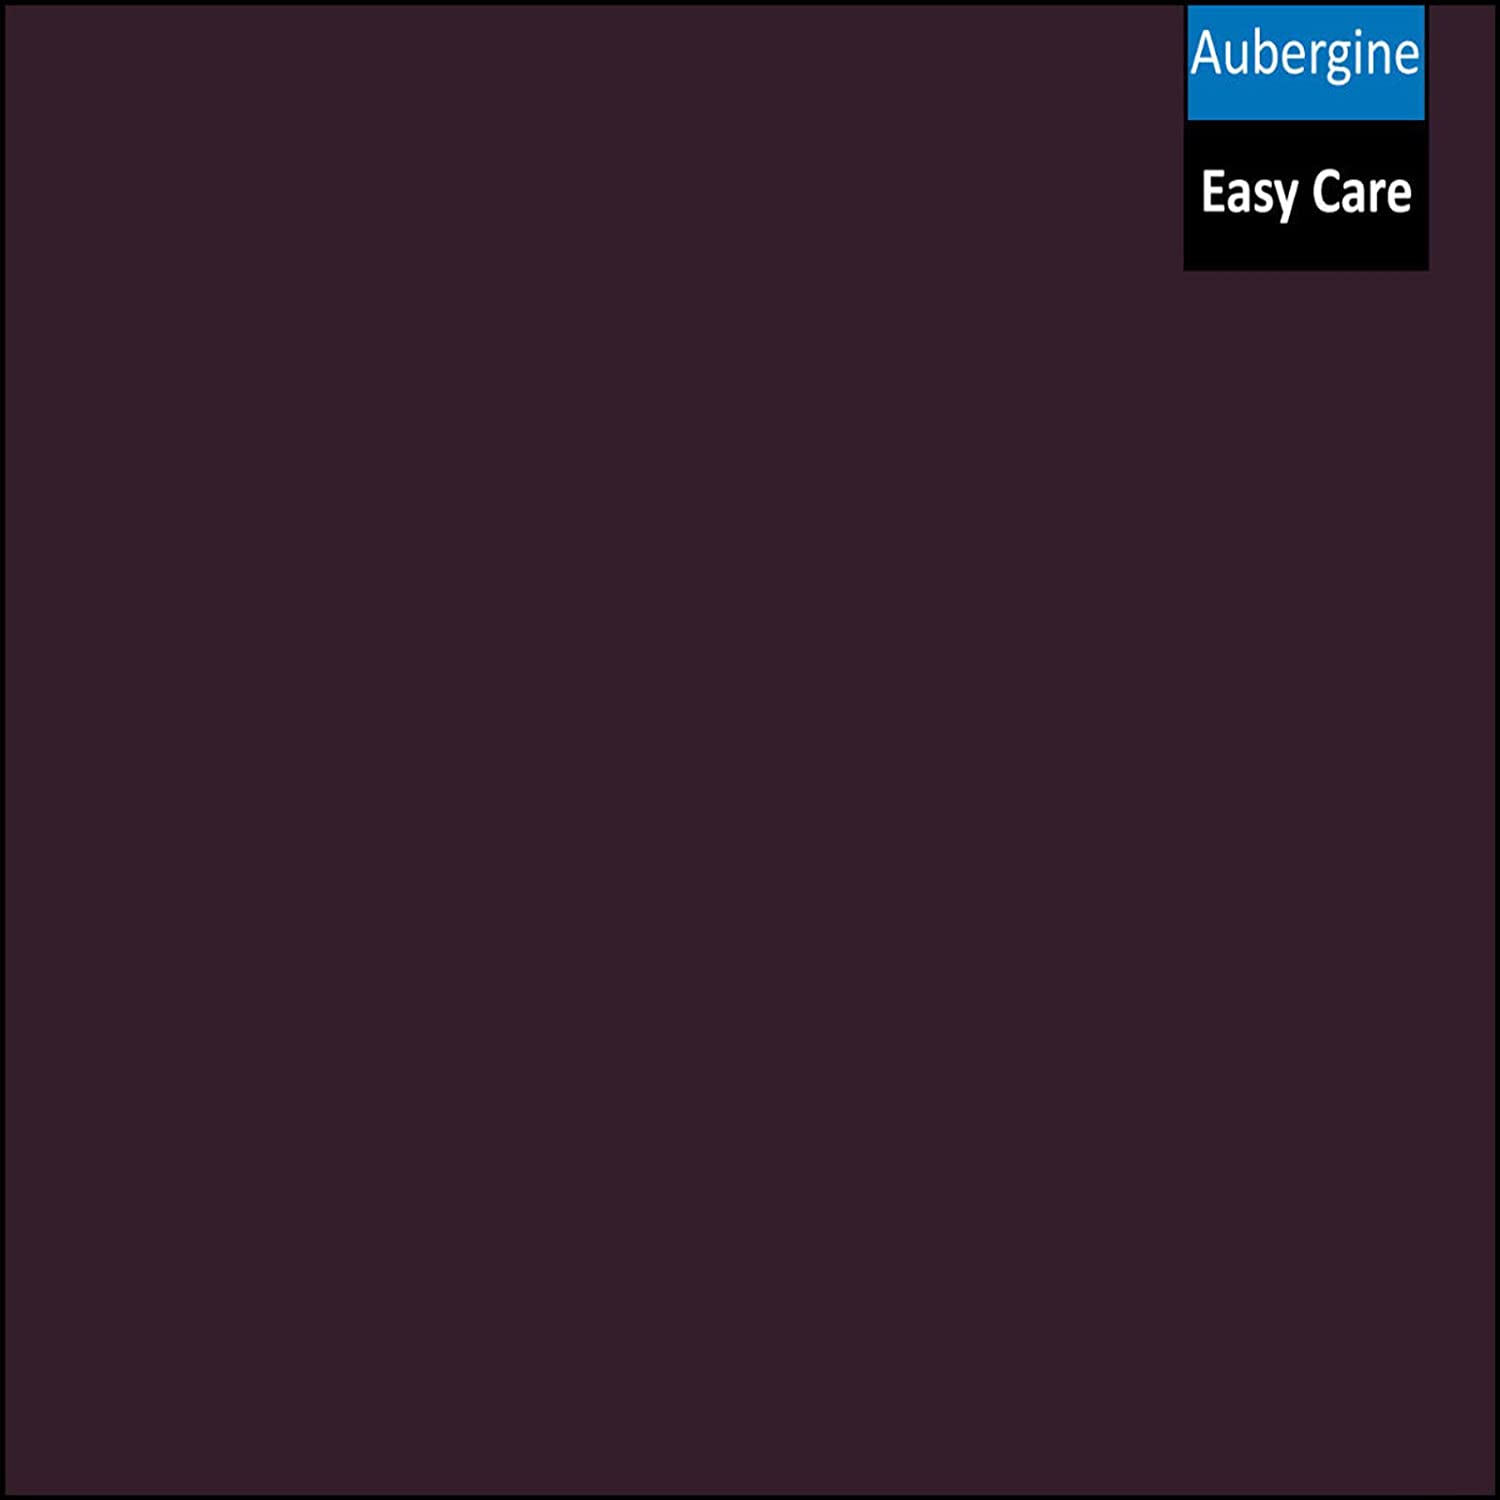 Size Double Adam Home Tto Flat Sheet Plain Dyed Poly-Cotton Bed Sheet Aubergine